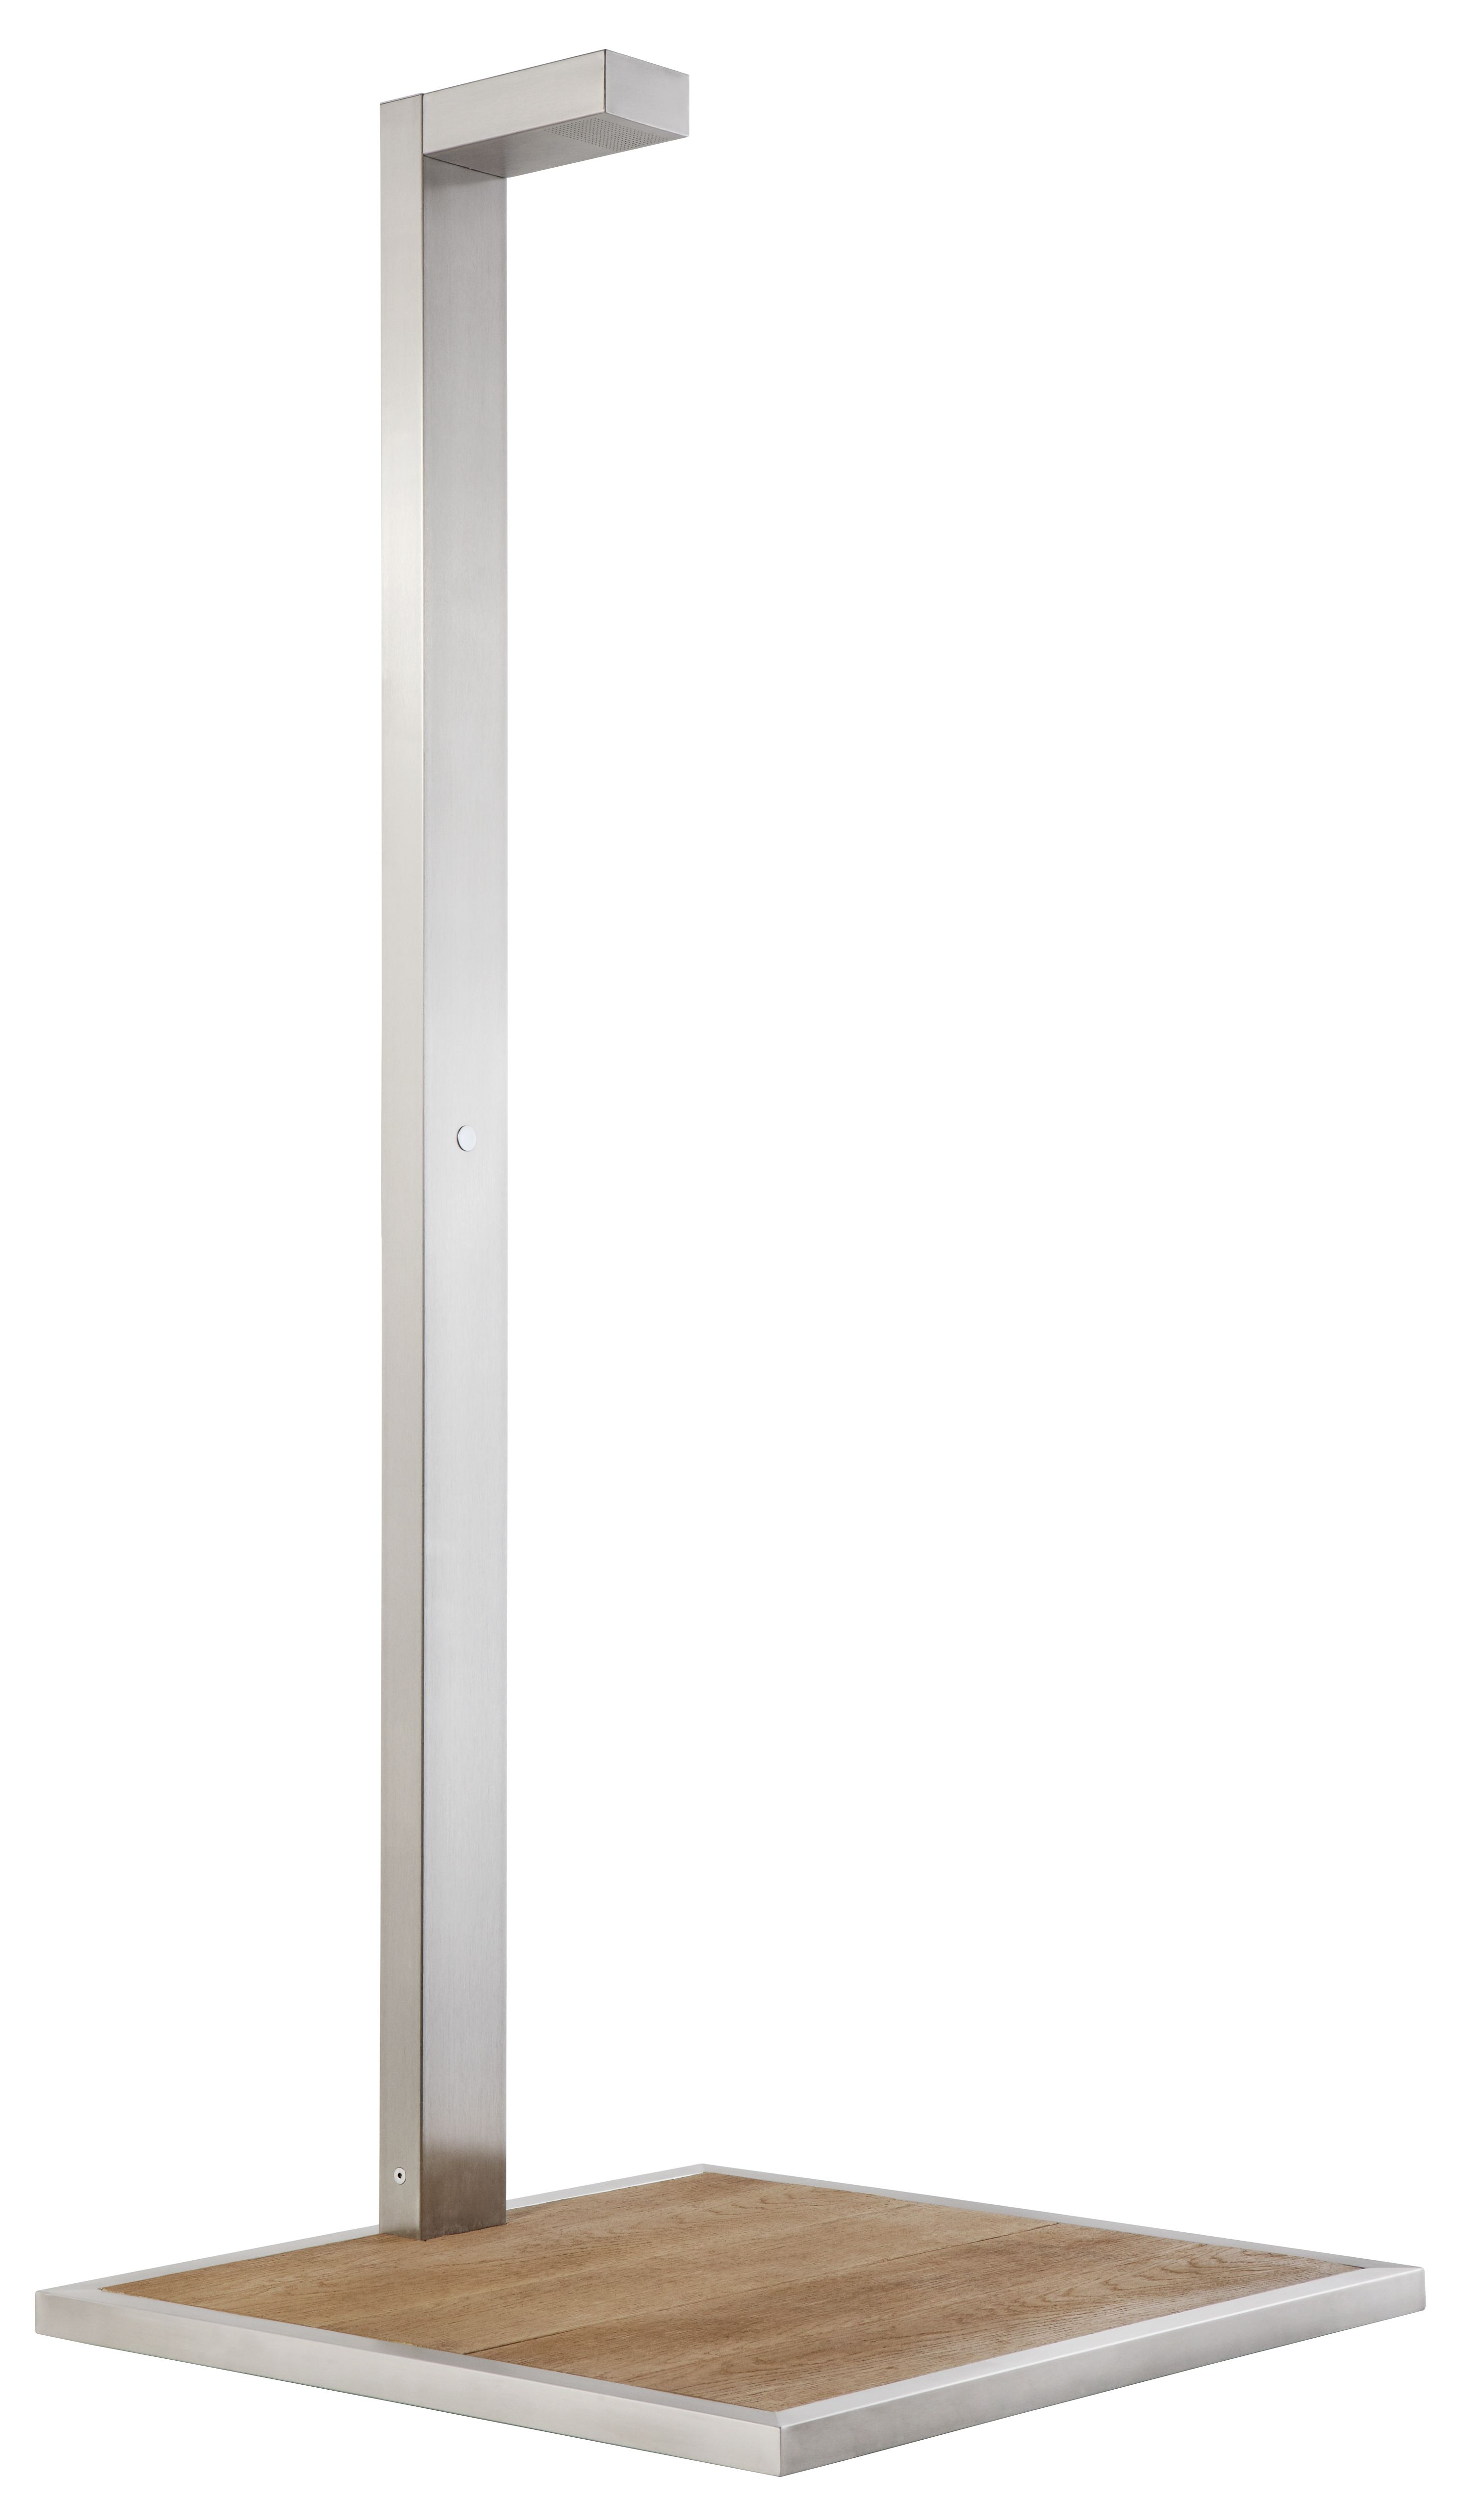 Aire Libre Free Standing Stainless Steel Outdoor Shower Doccia